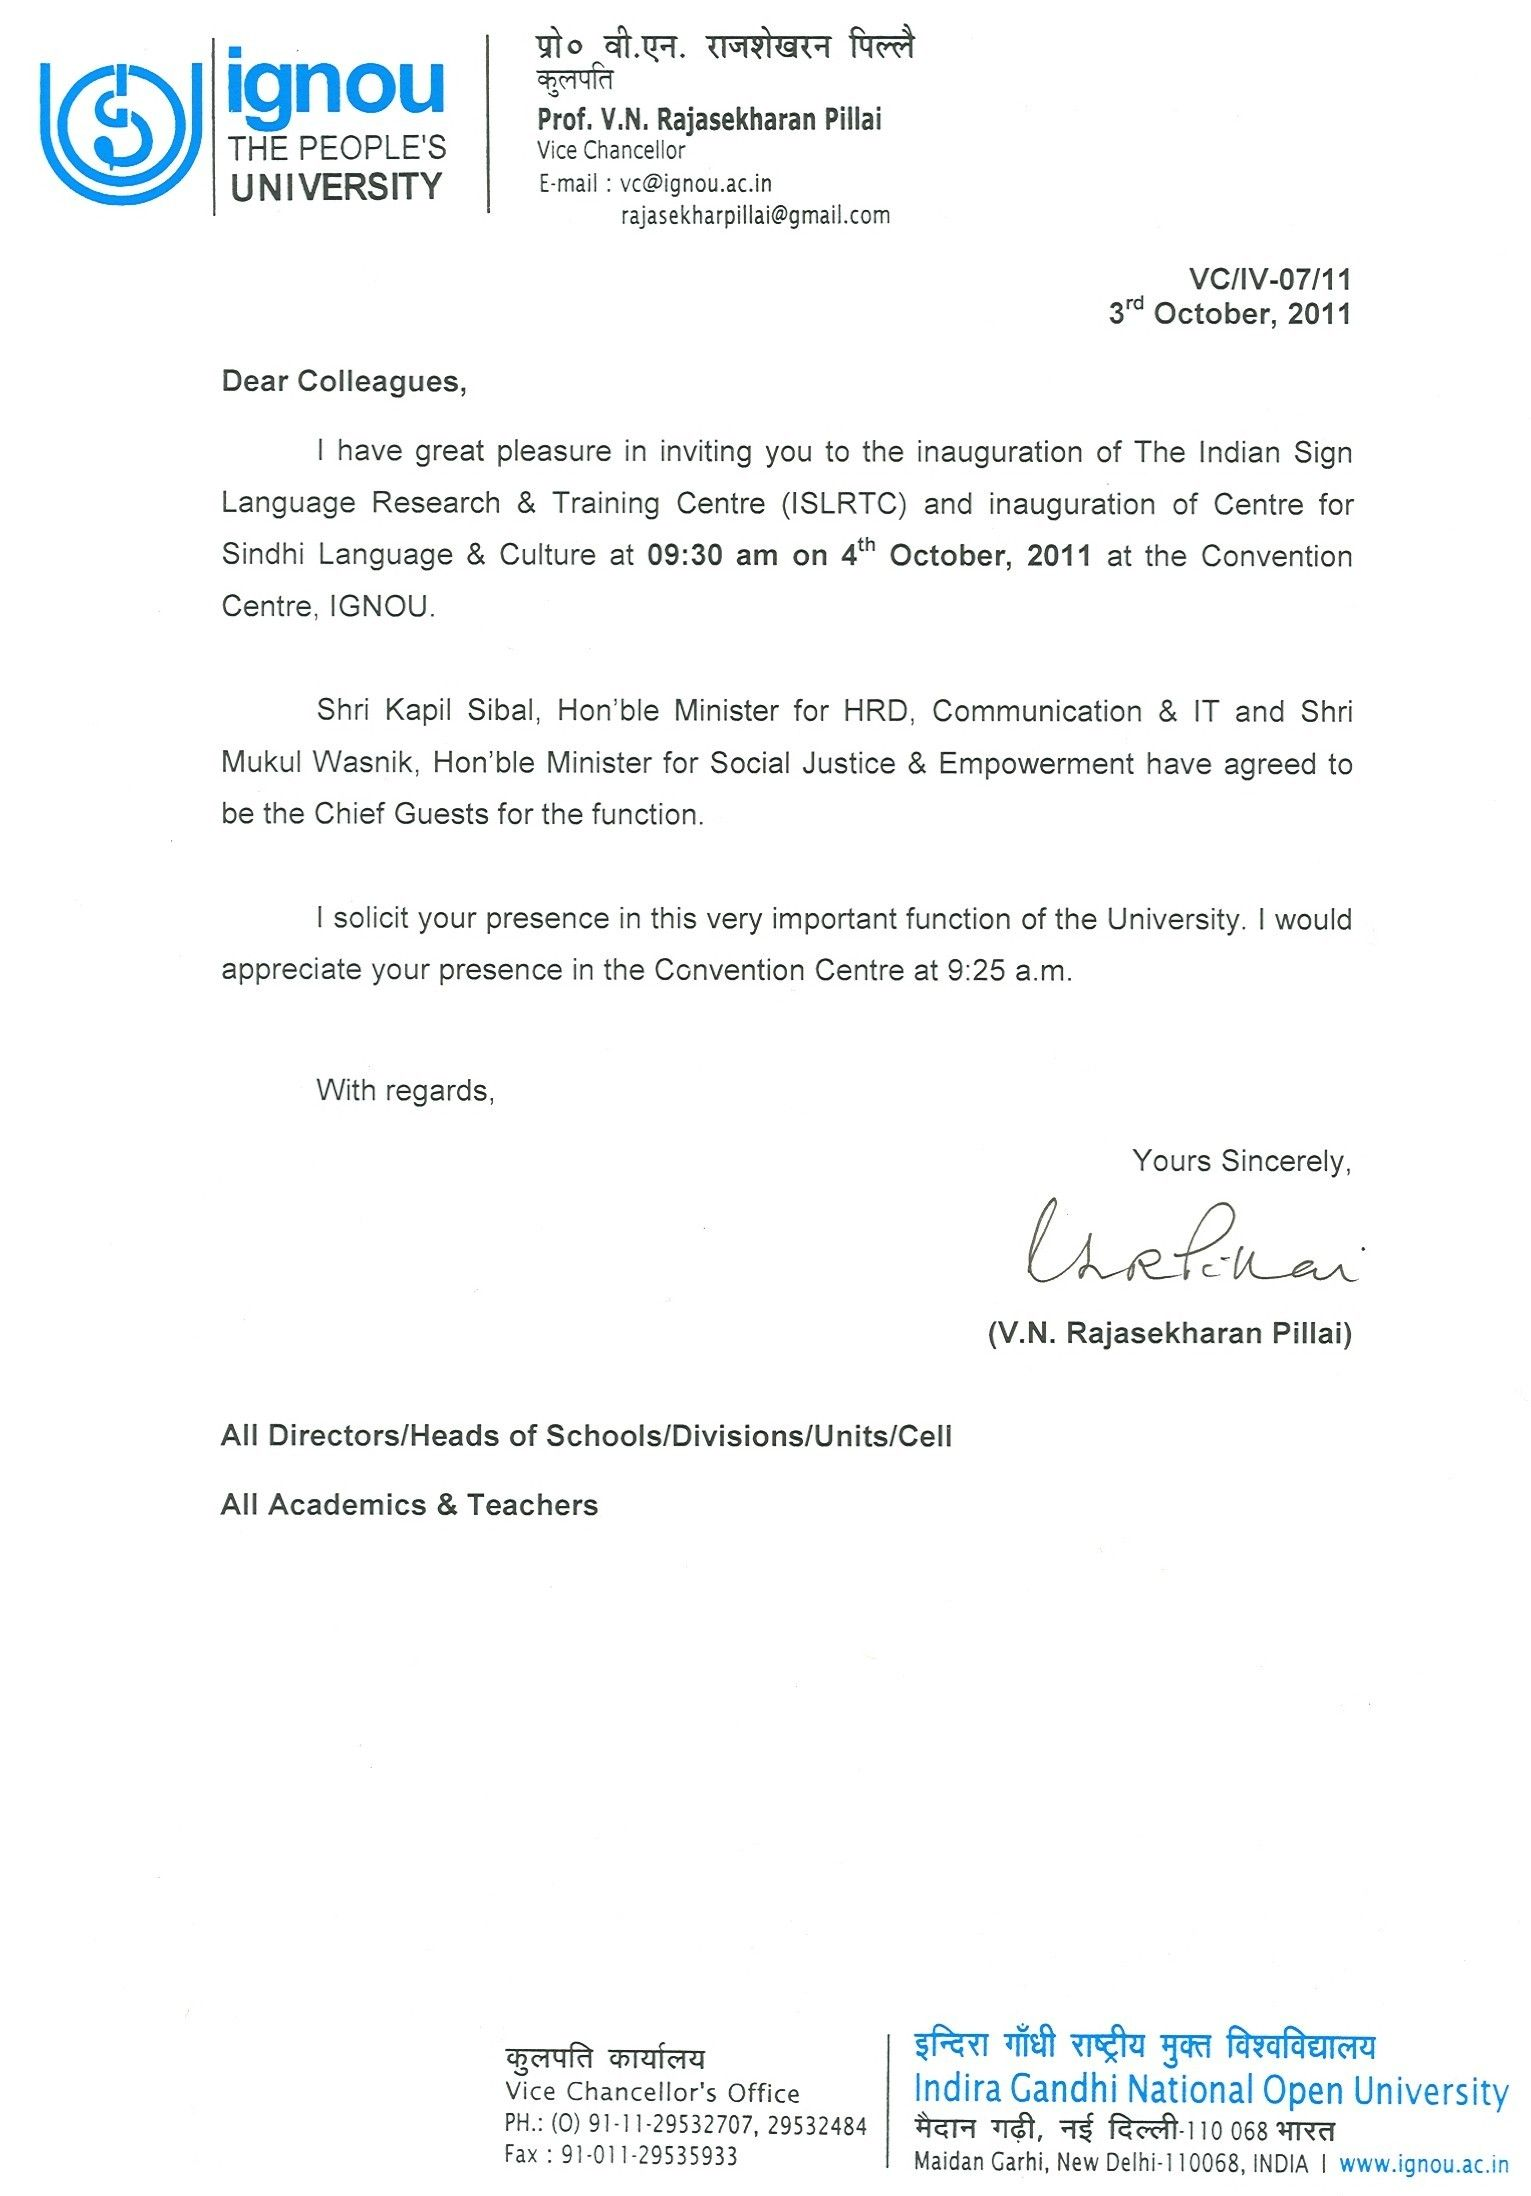 Format Of Invitation Letter For Inauguration To Chief Guest And